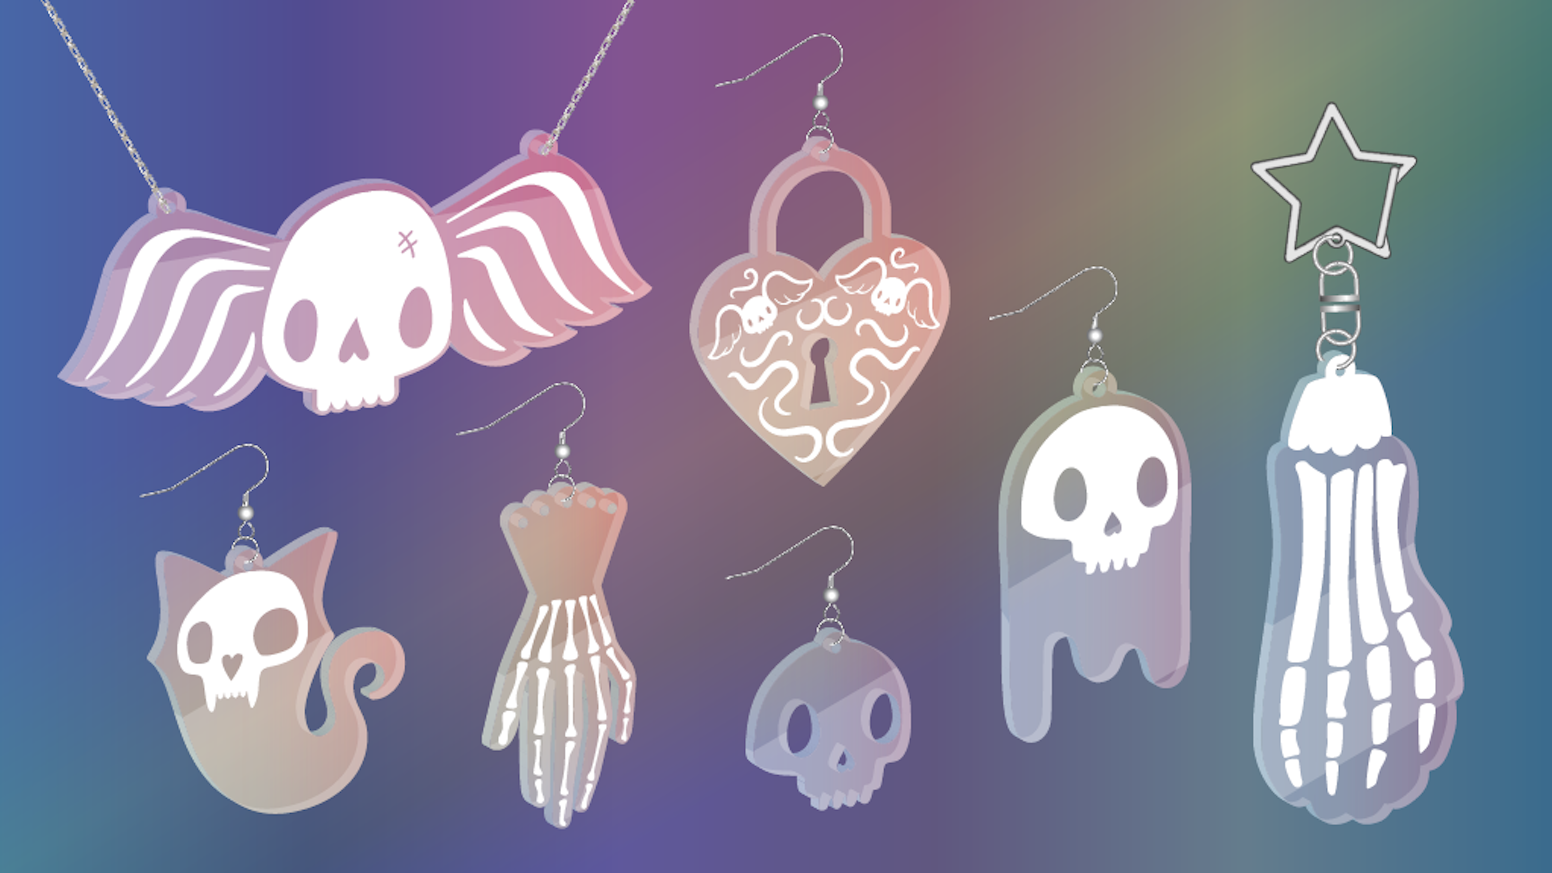 Color-shifting acrylic jewelry & accessories with a spooky theme. Special discounts for Make 100!